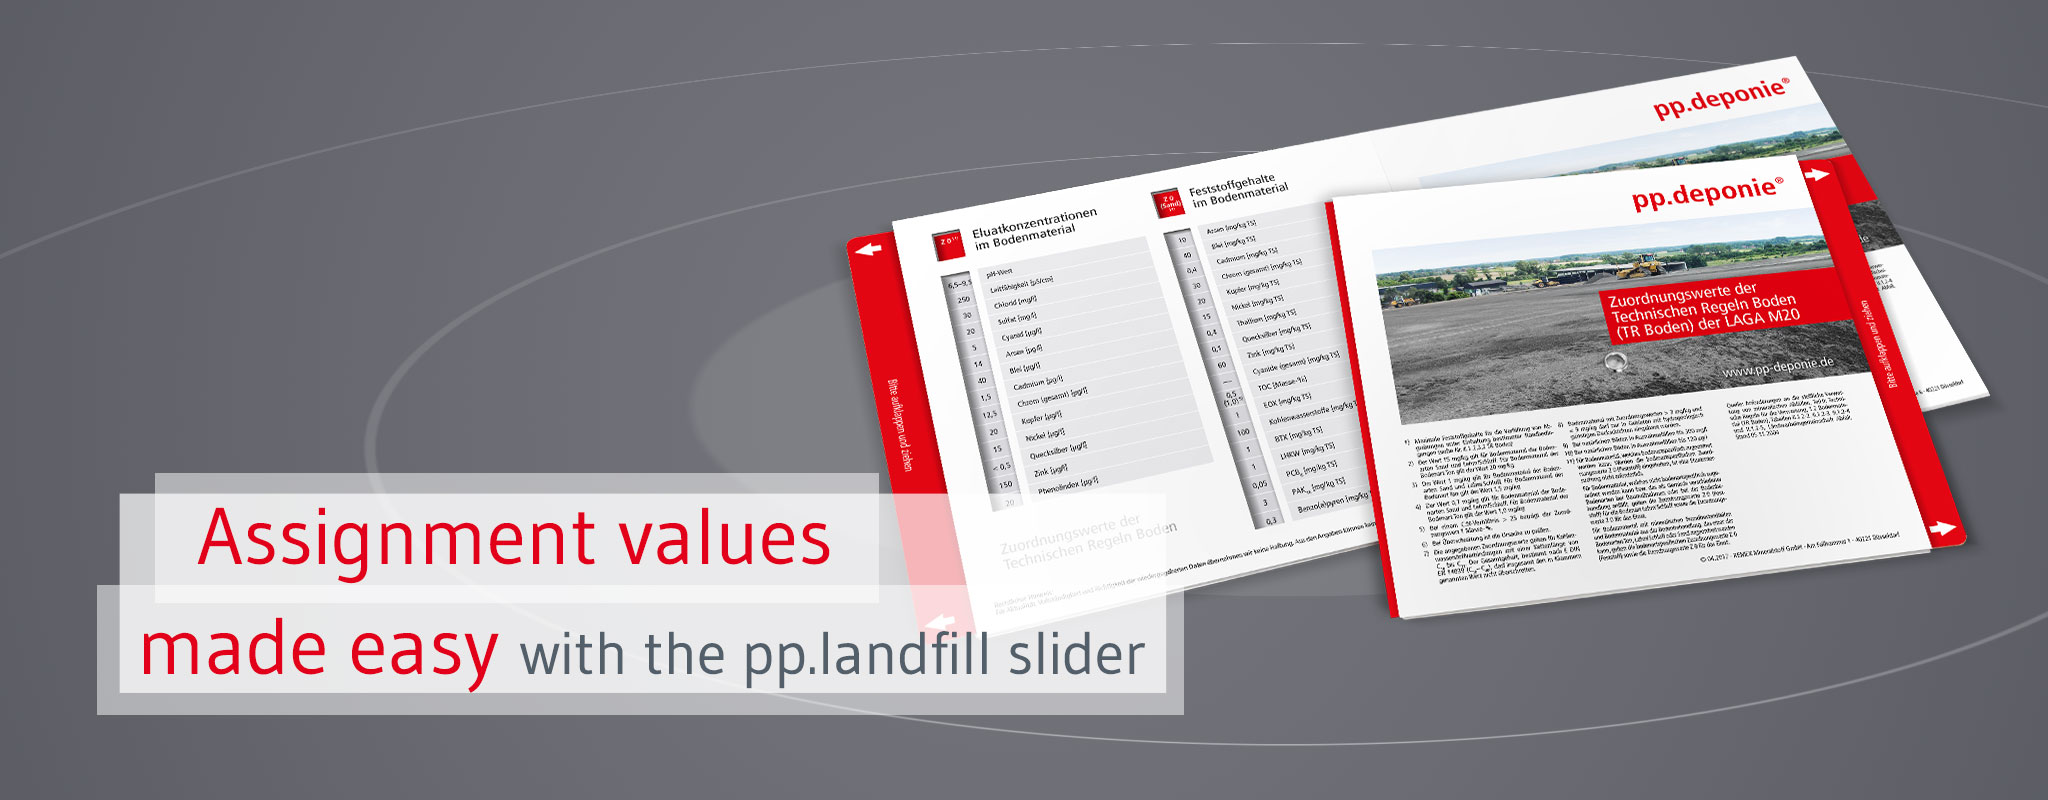 Assignment assignment values of the German Landfill Directive in the landfill slider